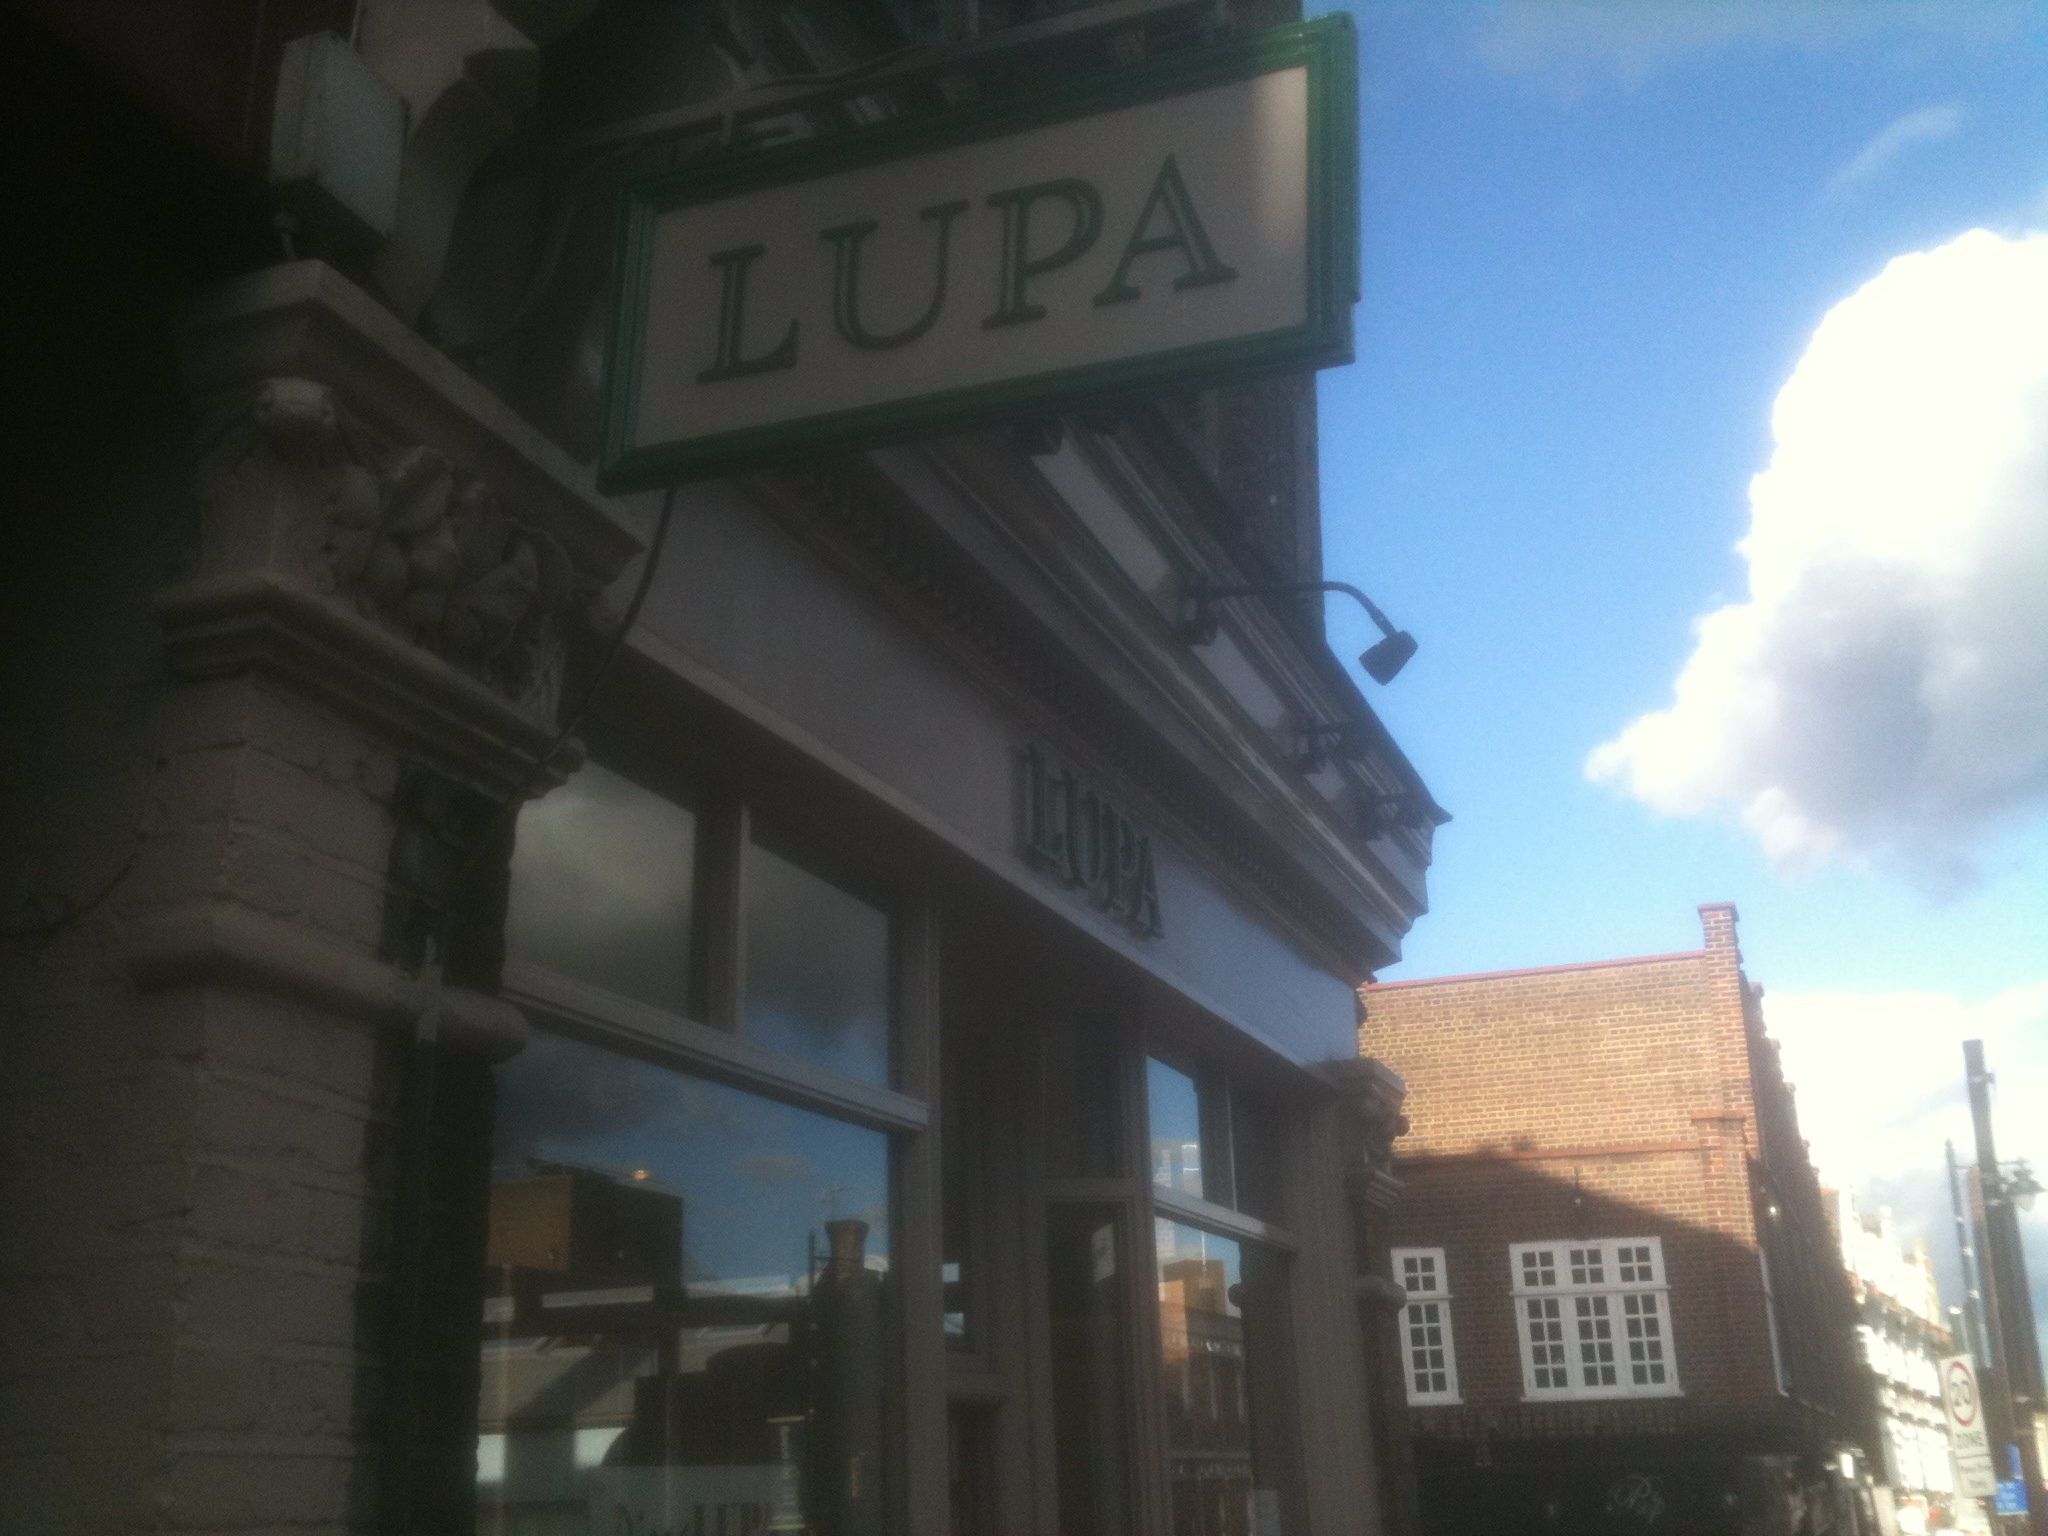 Pizza Lupa Crouch End London